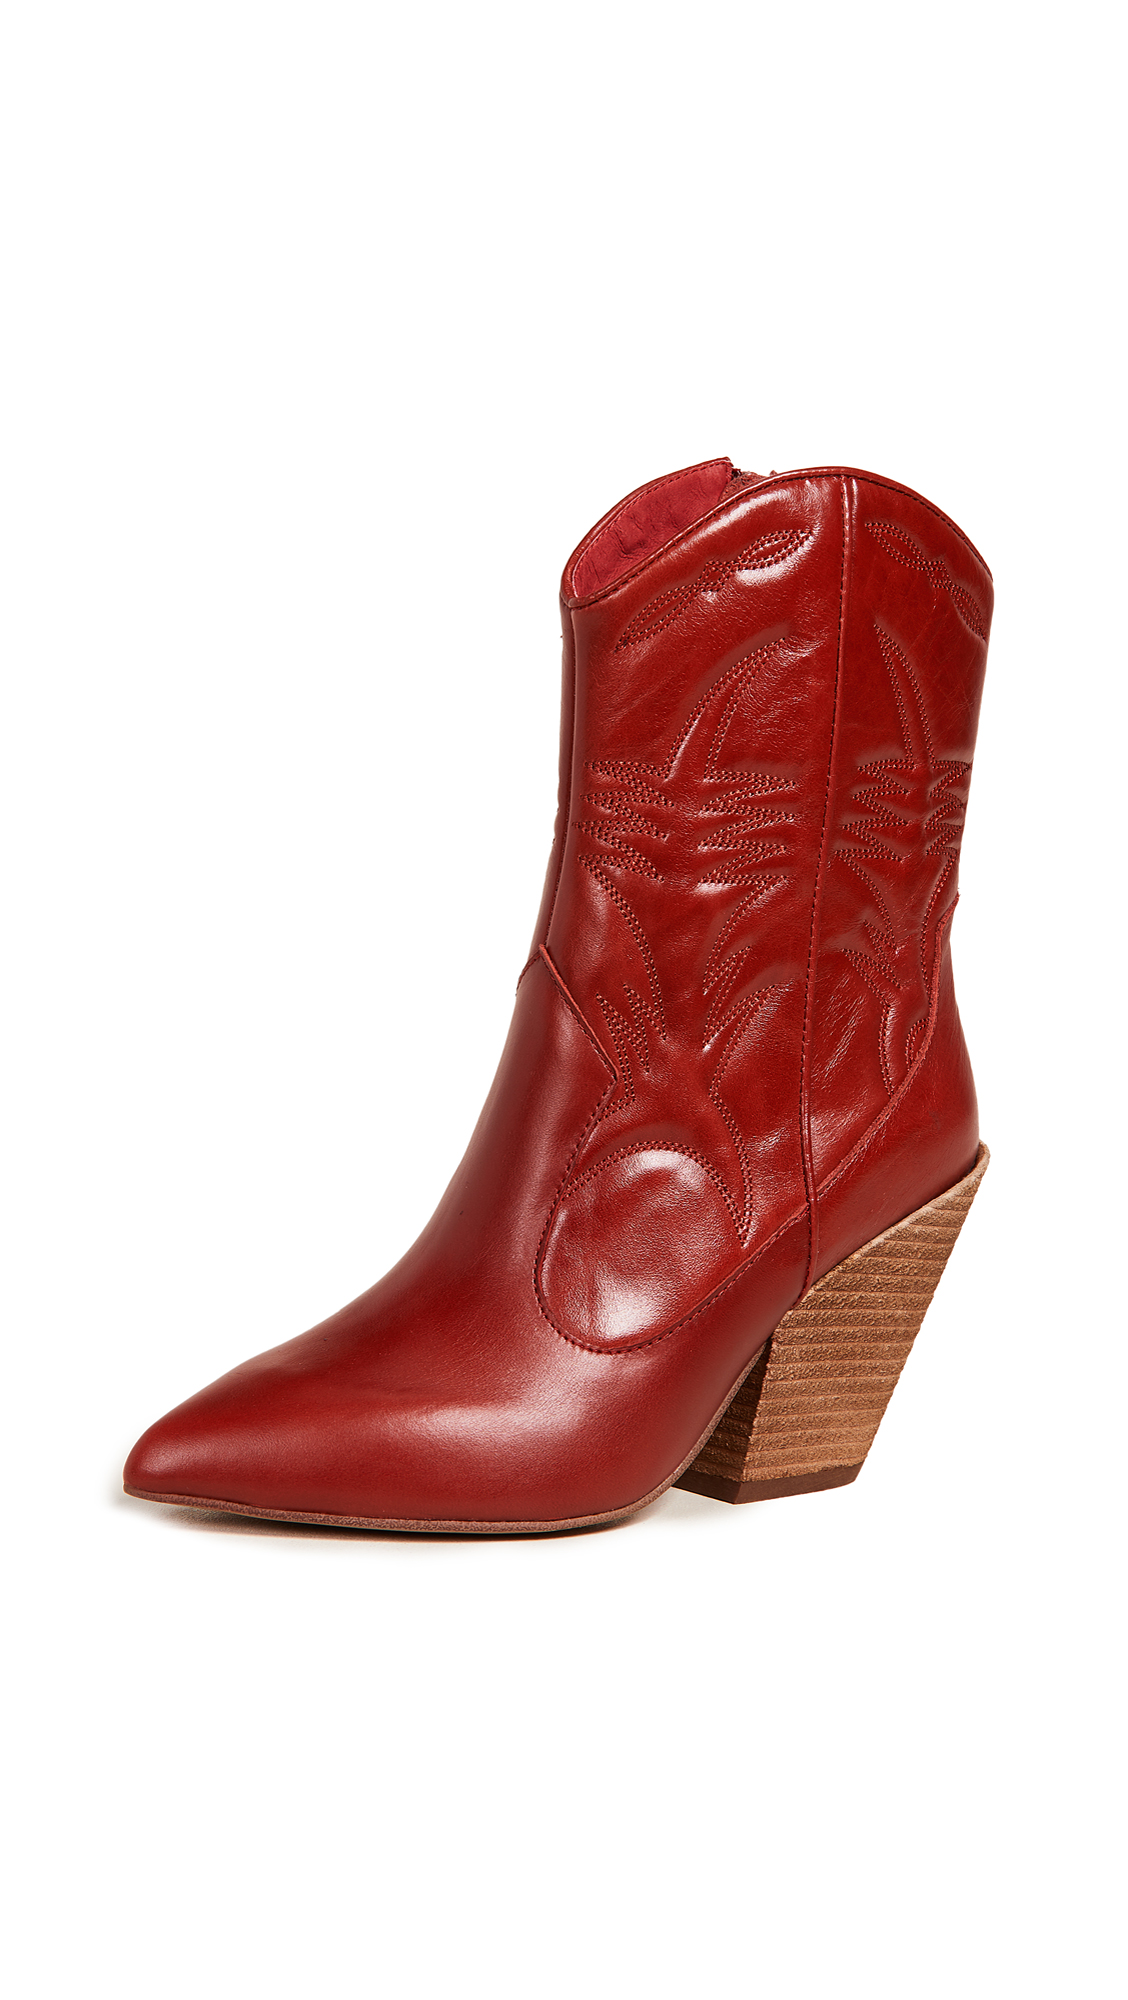 Jeffrey Campbell Midpark Western Boots - Red